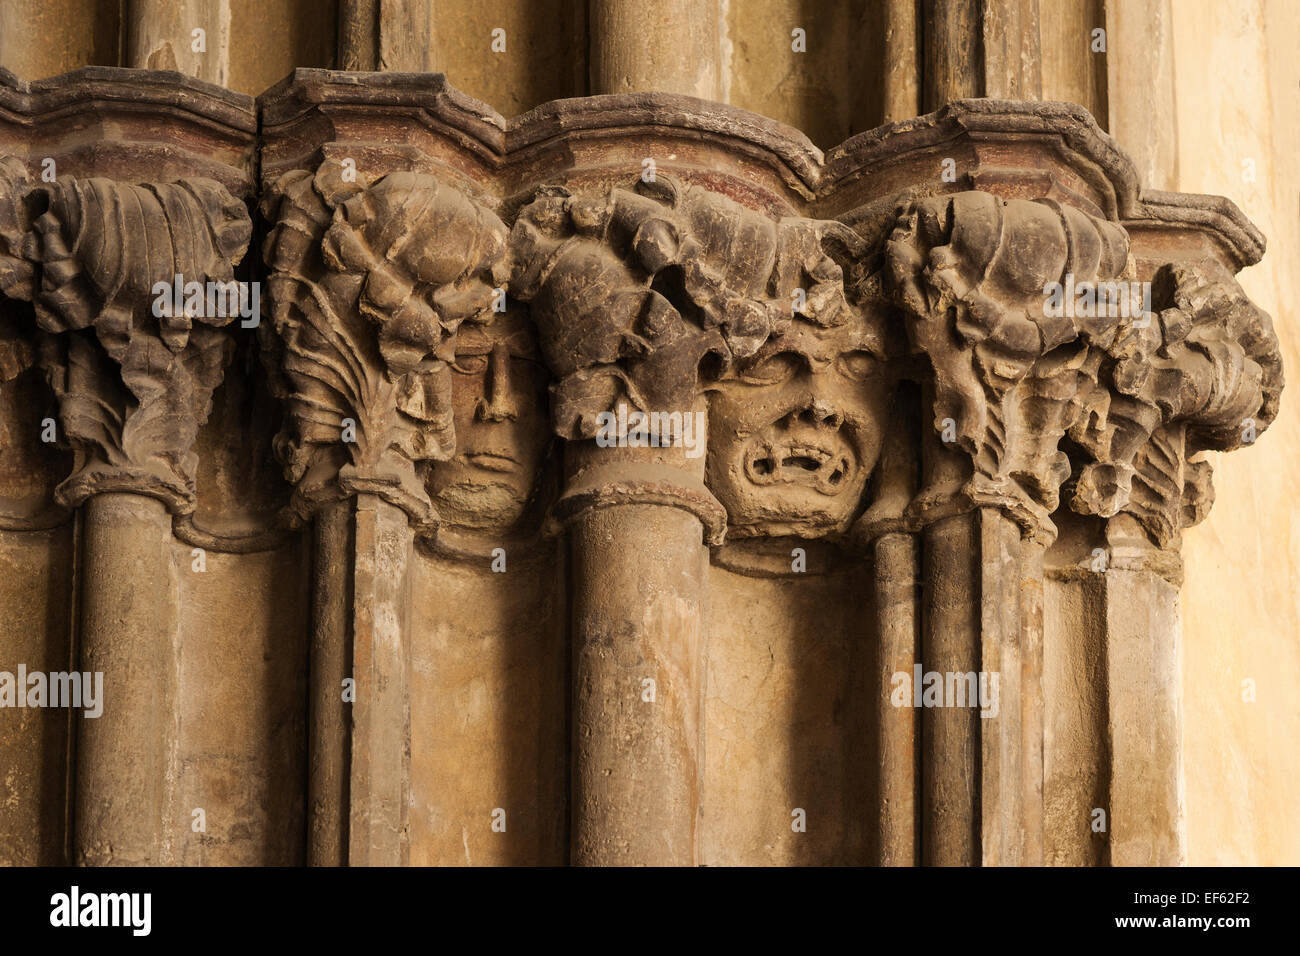 Architectural Detail Of Columns And Grotesque Faces At St James Gothic Church Contains Tallest Wooden Altar Levoca Slovakia